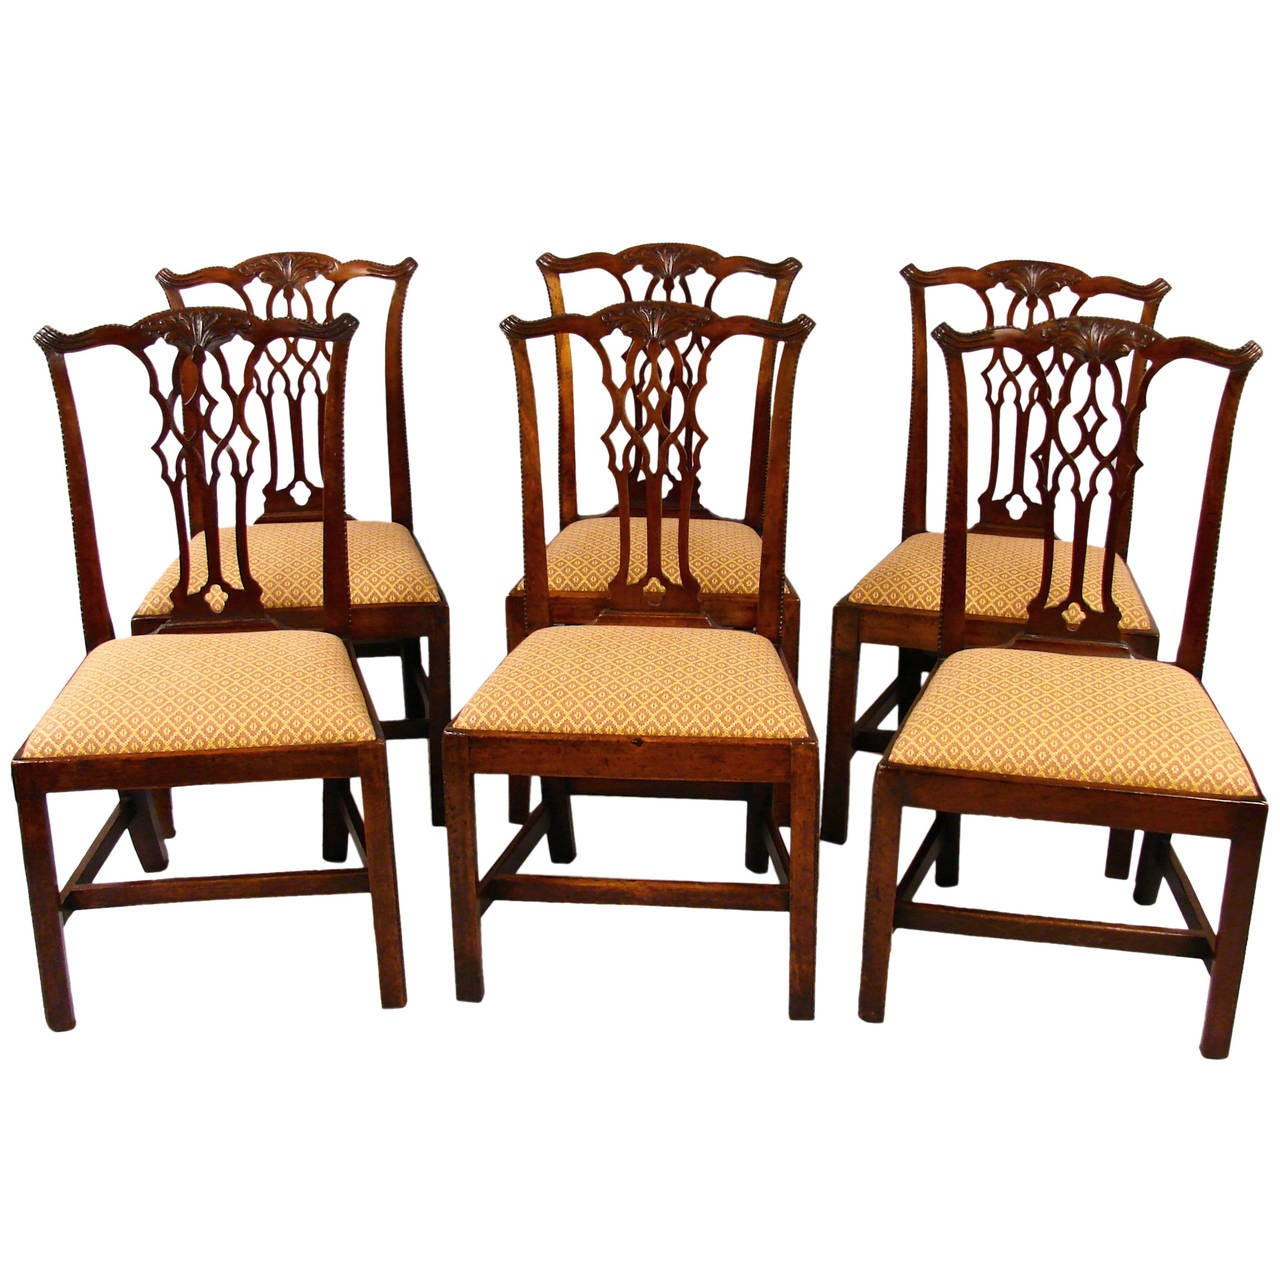 Chippendale Mahogany Dining Room Chairs: Eight Chippendale Mahogany Dining Chairs At 1stdibs